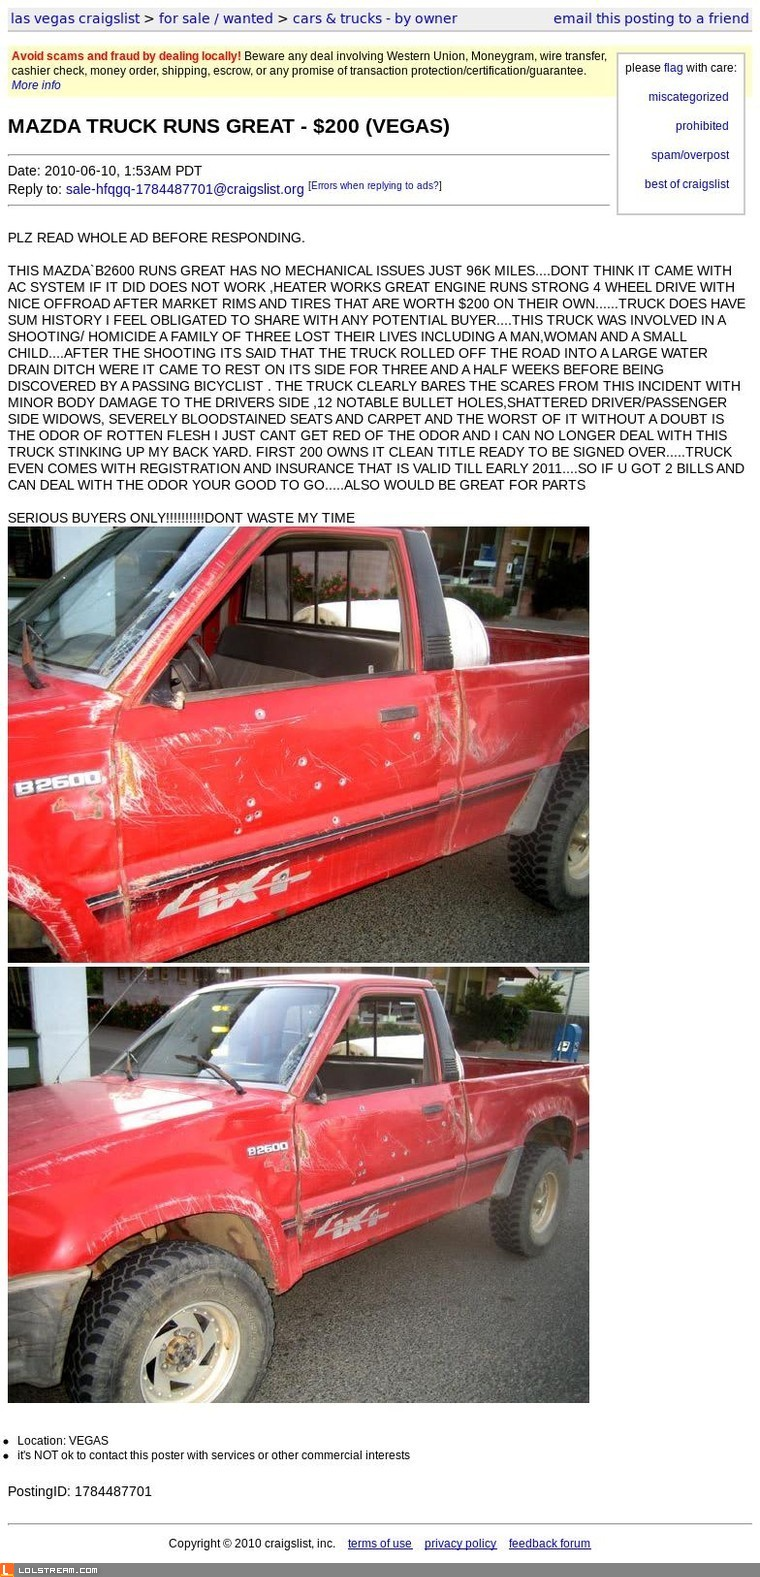 Mazda truck for sale - runs great, one small issue...